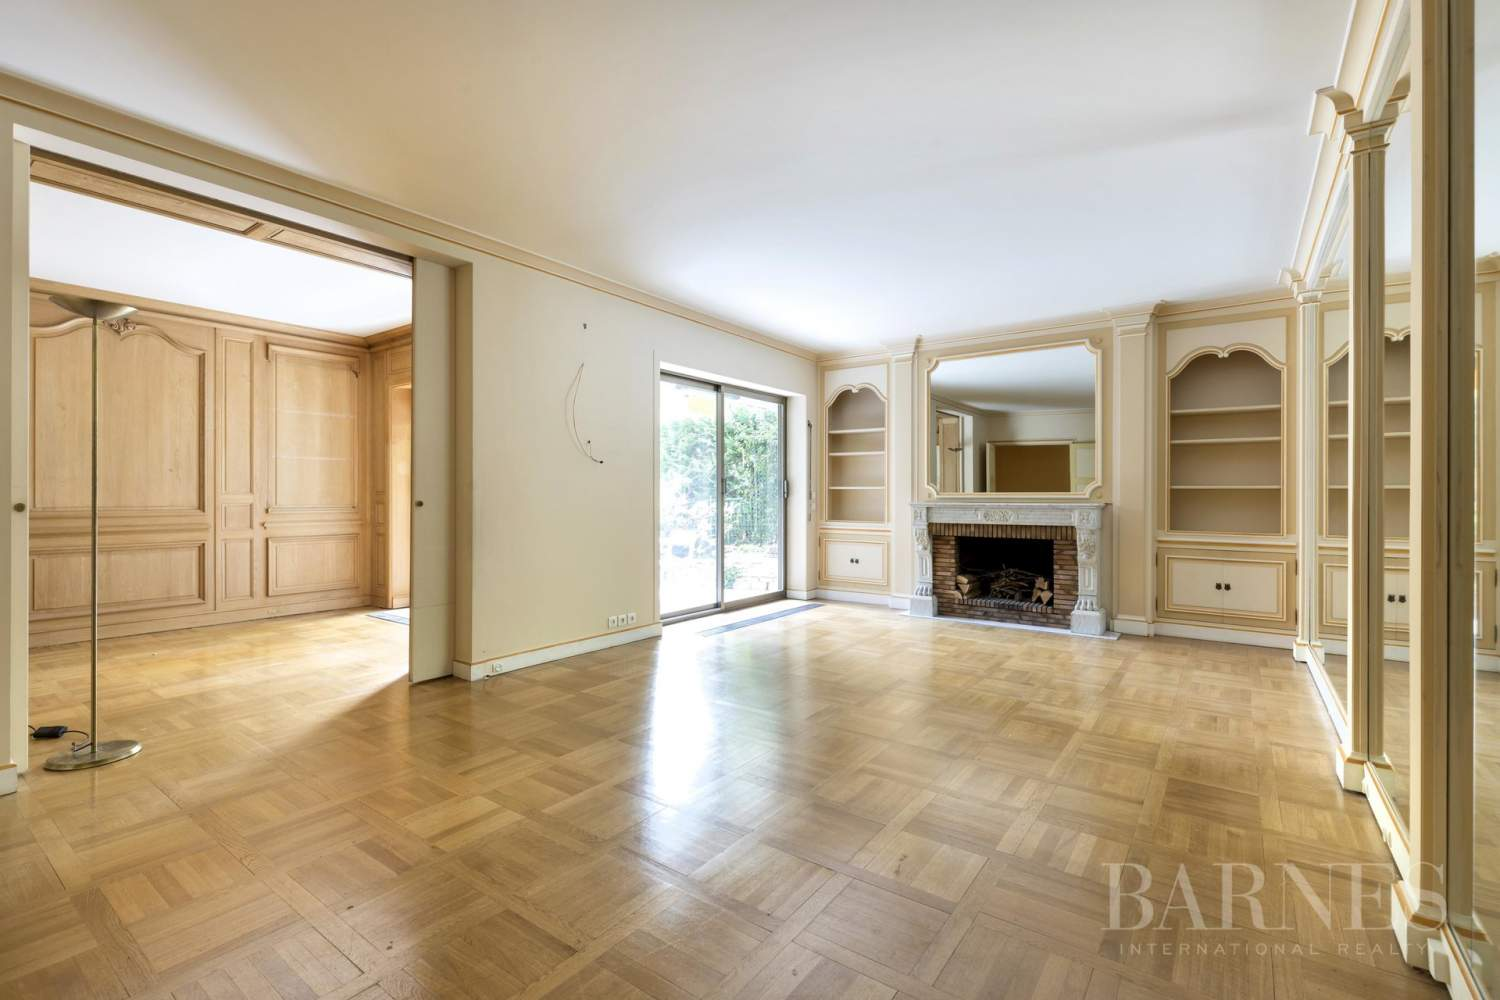 NEUILLY - CHATEAU - JARDIN et TERRASSE - 2/3 CHAMBRES - PARKING picture 1